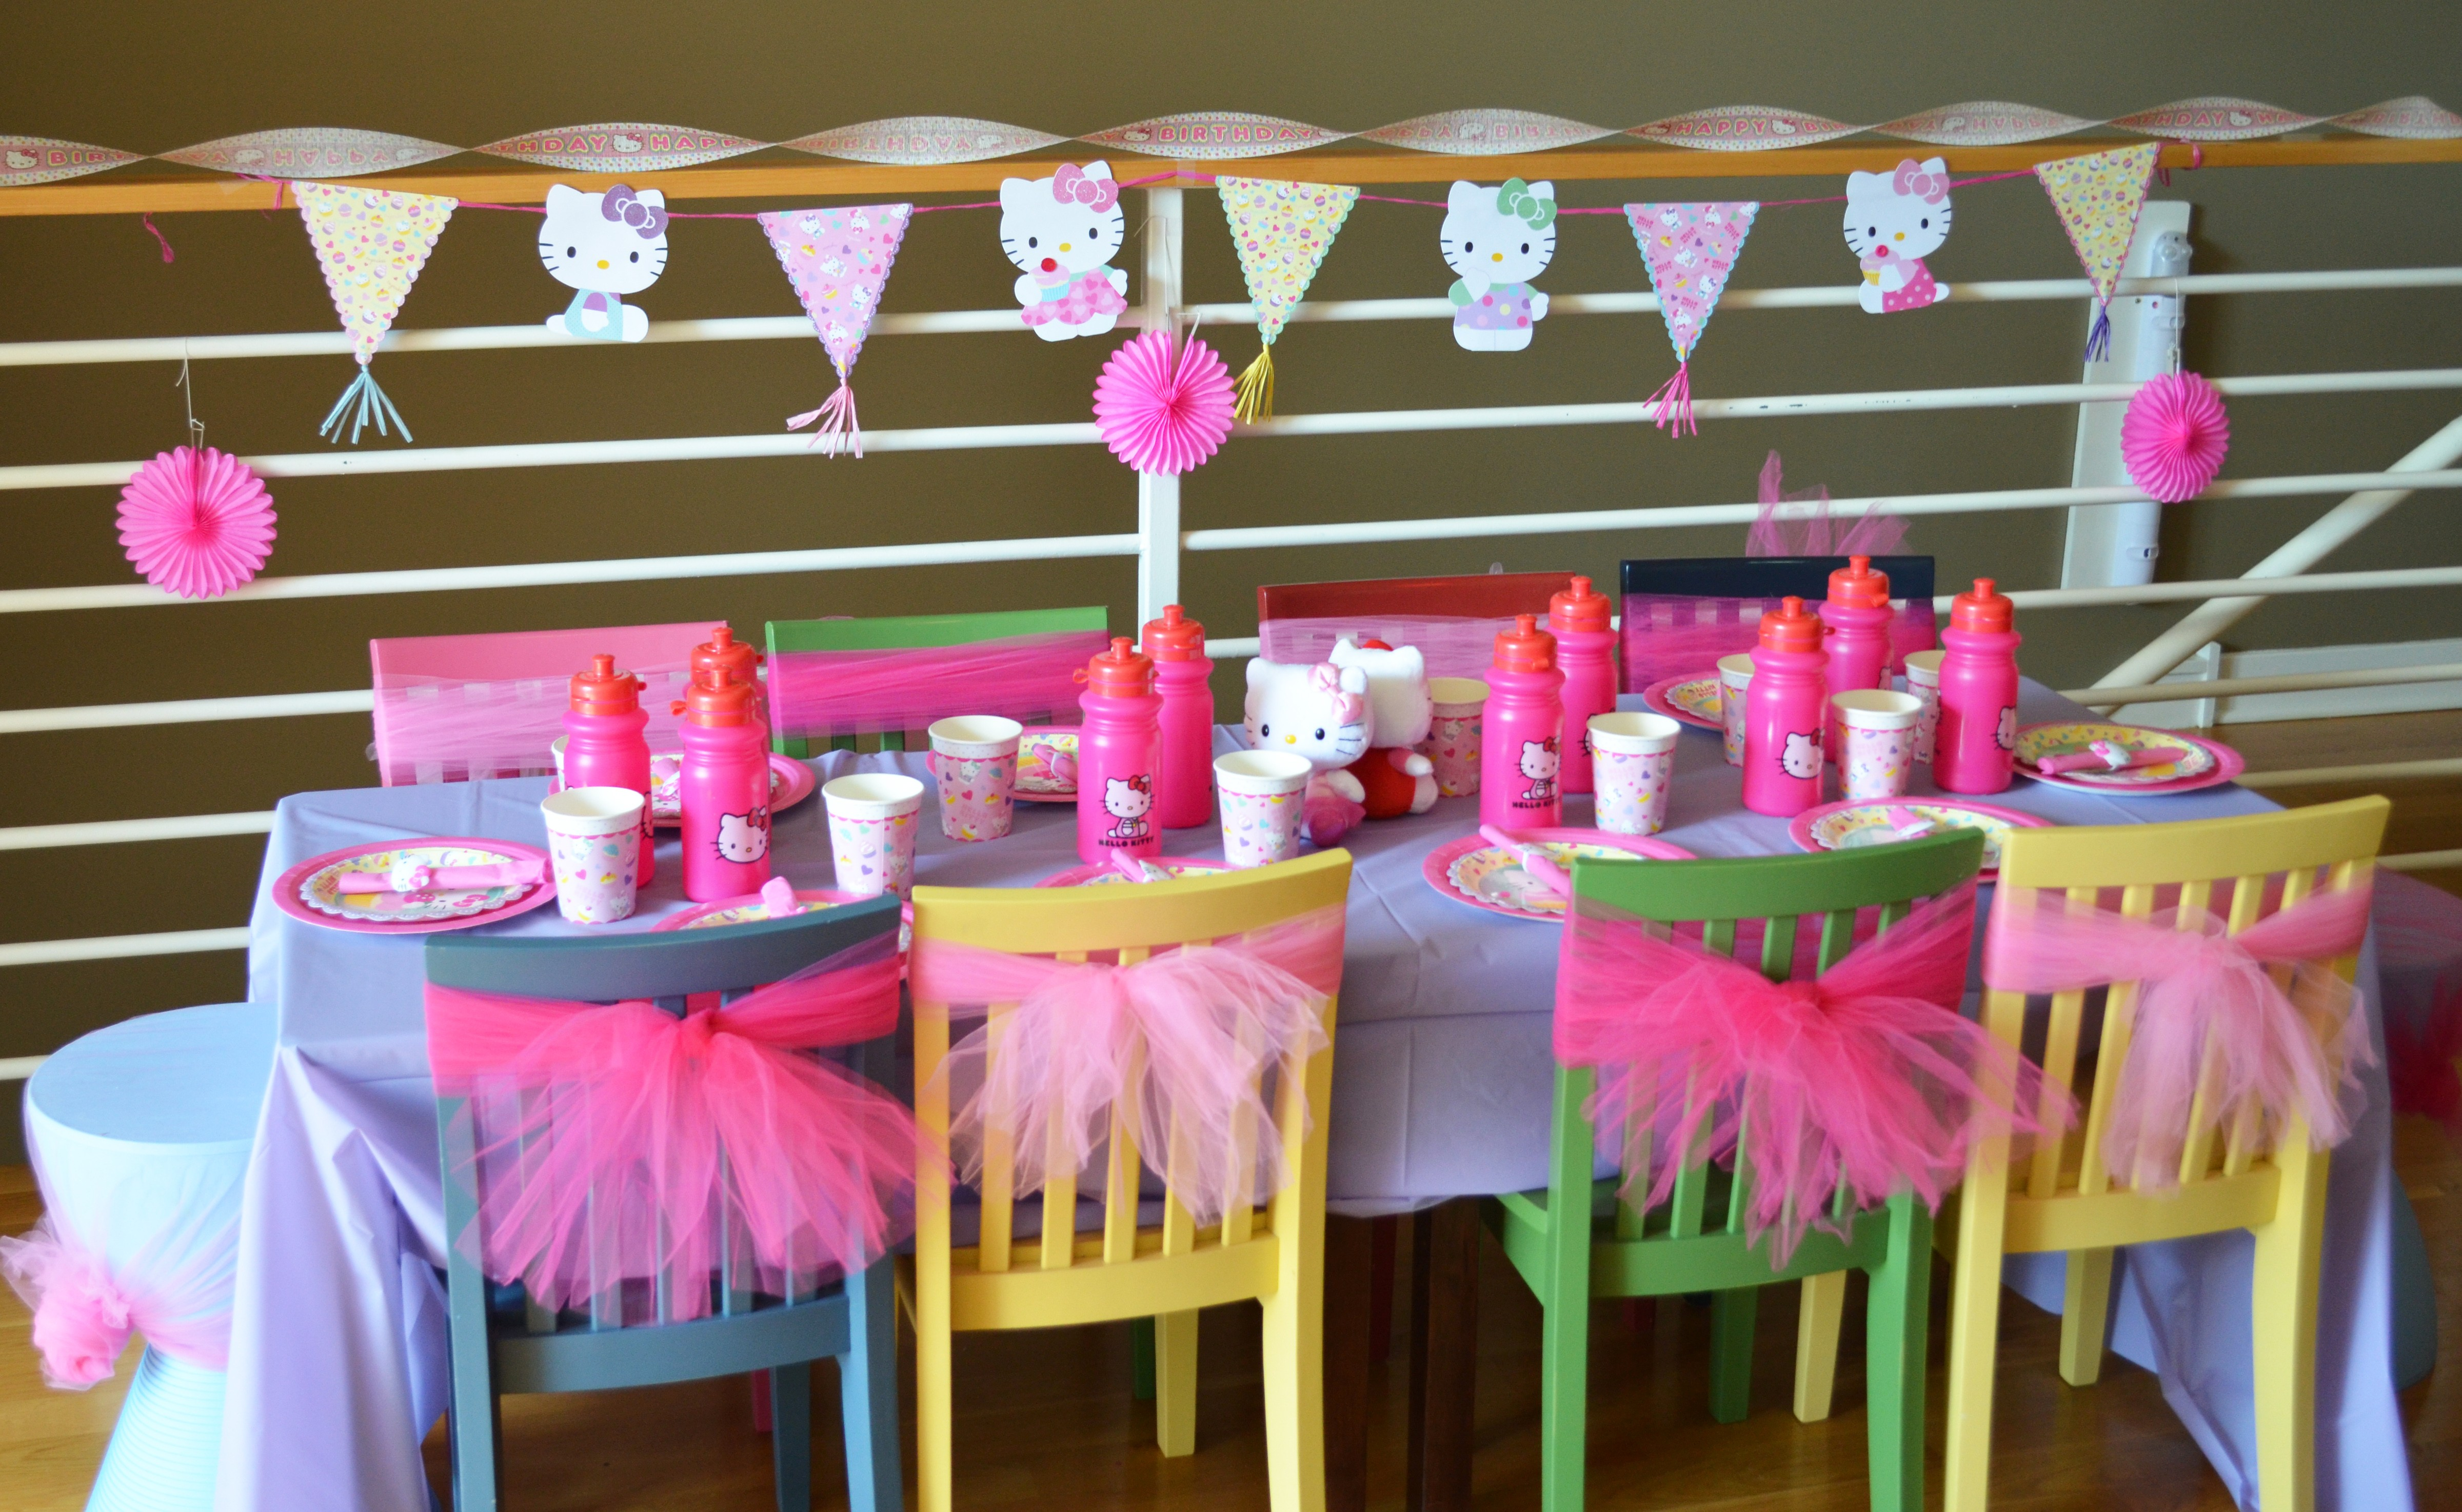 3 year old birthday party ; 3-year-old-birthday-party-beautiful-photo-with-regards-to-peachy-3-year-old-birthday-party-ideas-at-home-home-designs-of-3-year-old-birthday-party